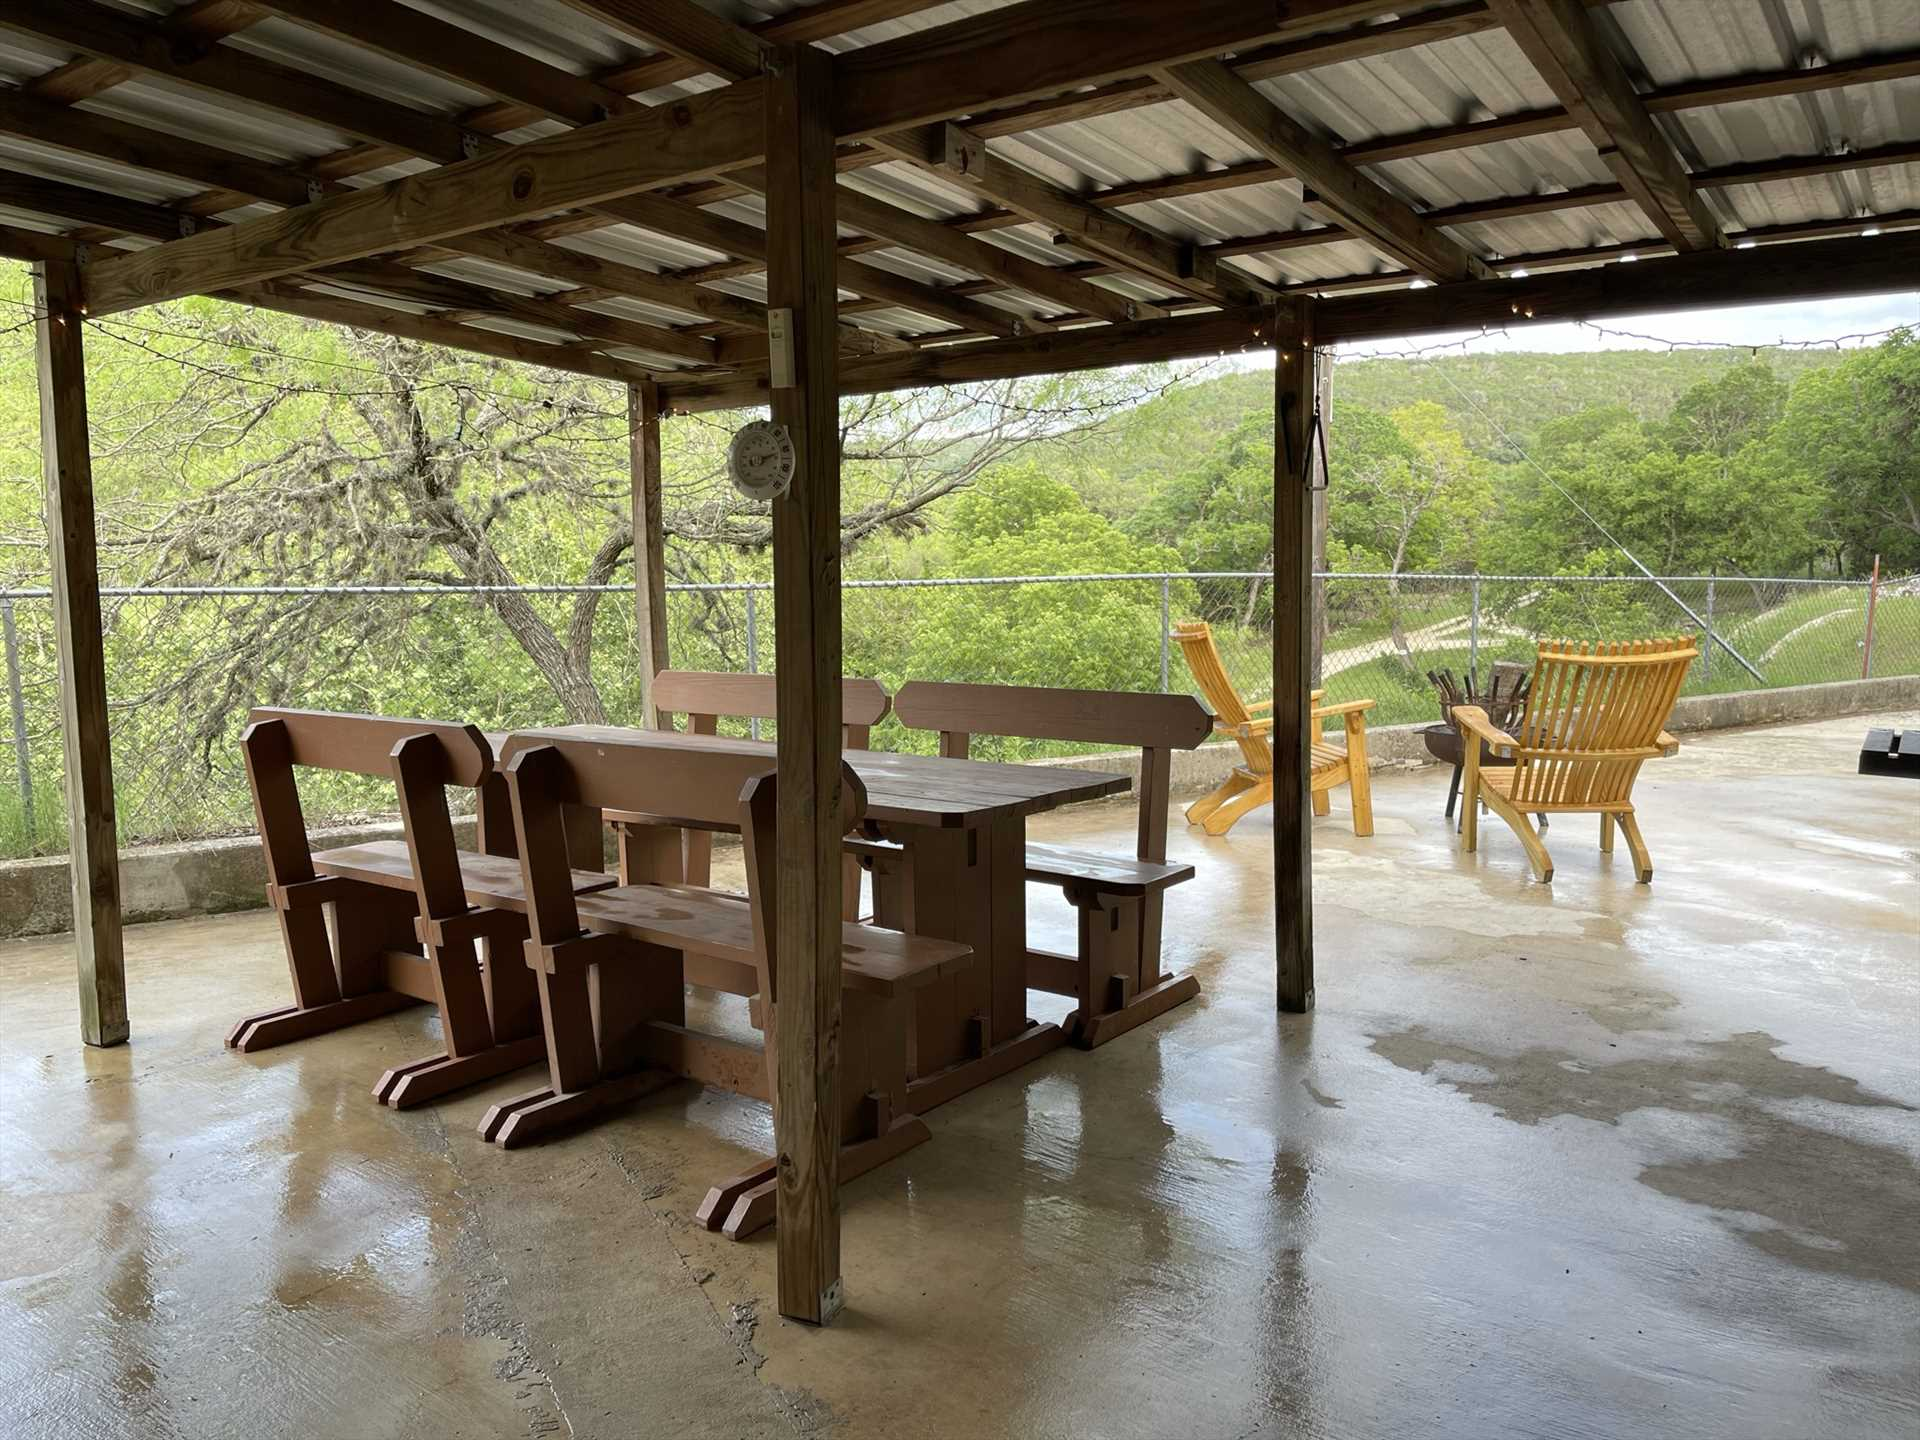 The shady outdoor patio is a wonderful place to watch wildlife and take in those amazing Hill Country views.